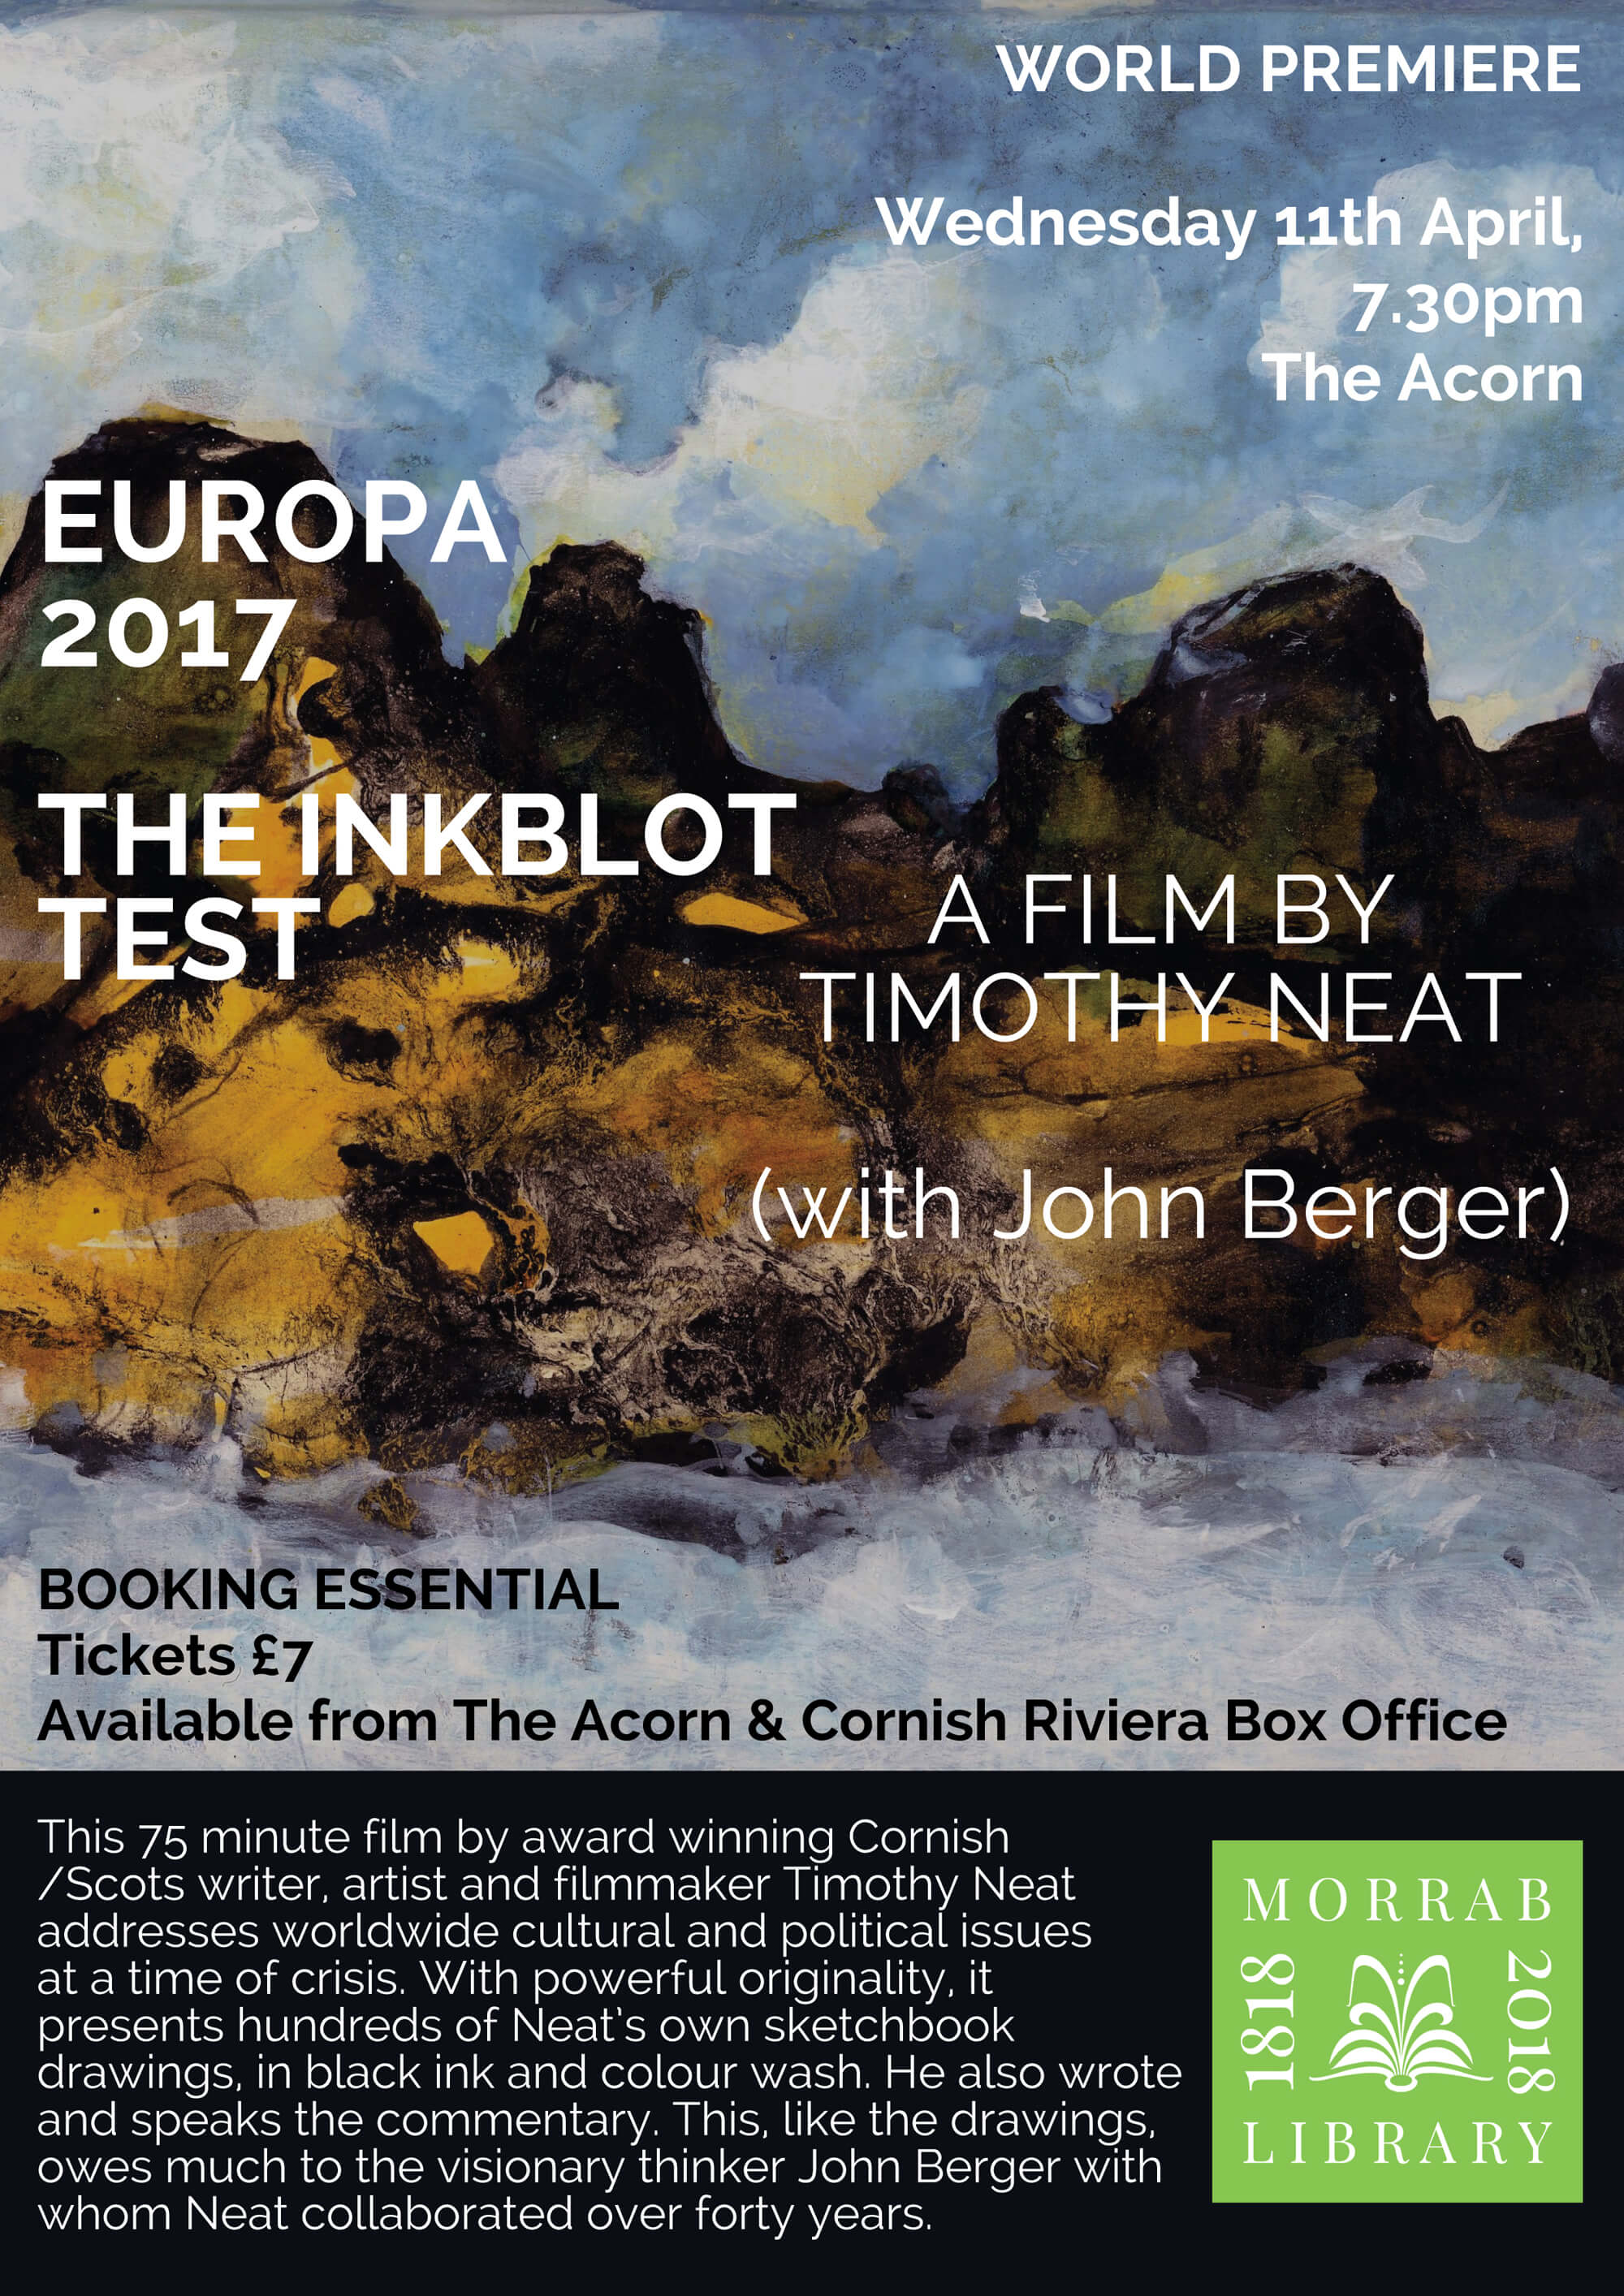 Europa 2017. The Inkblot Test - A Film by Timothy Neat